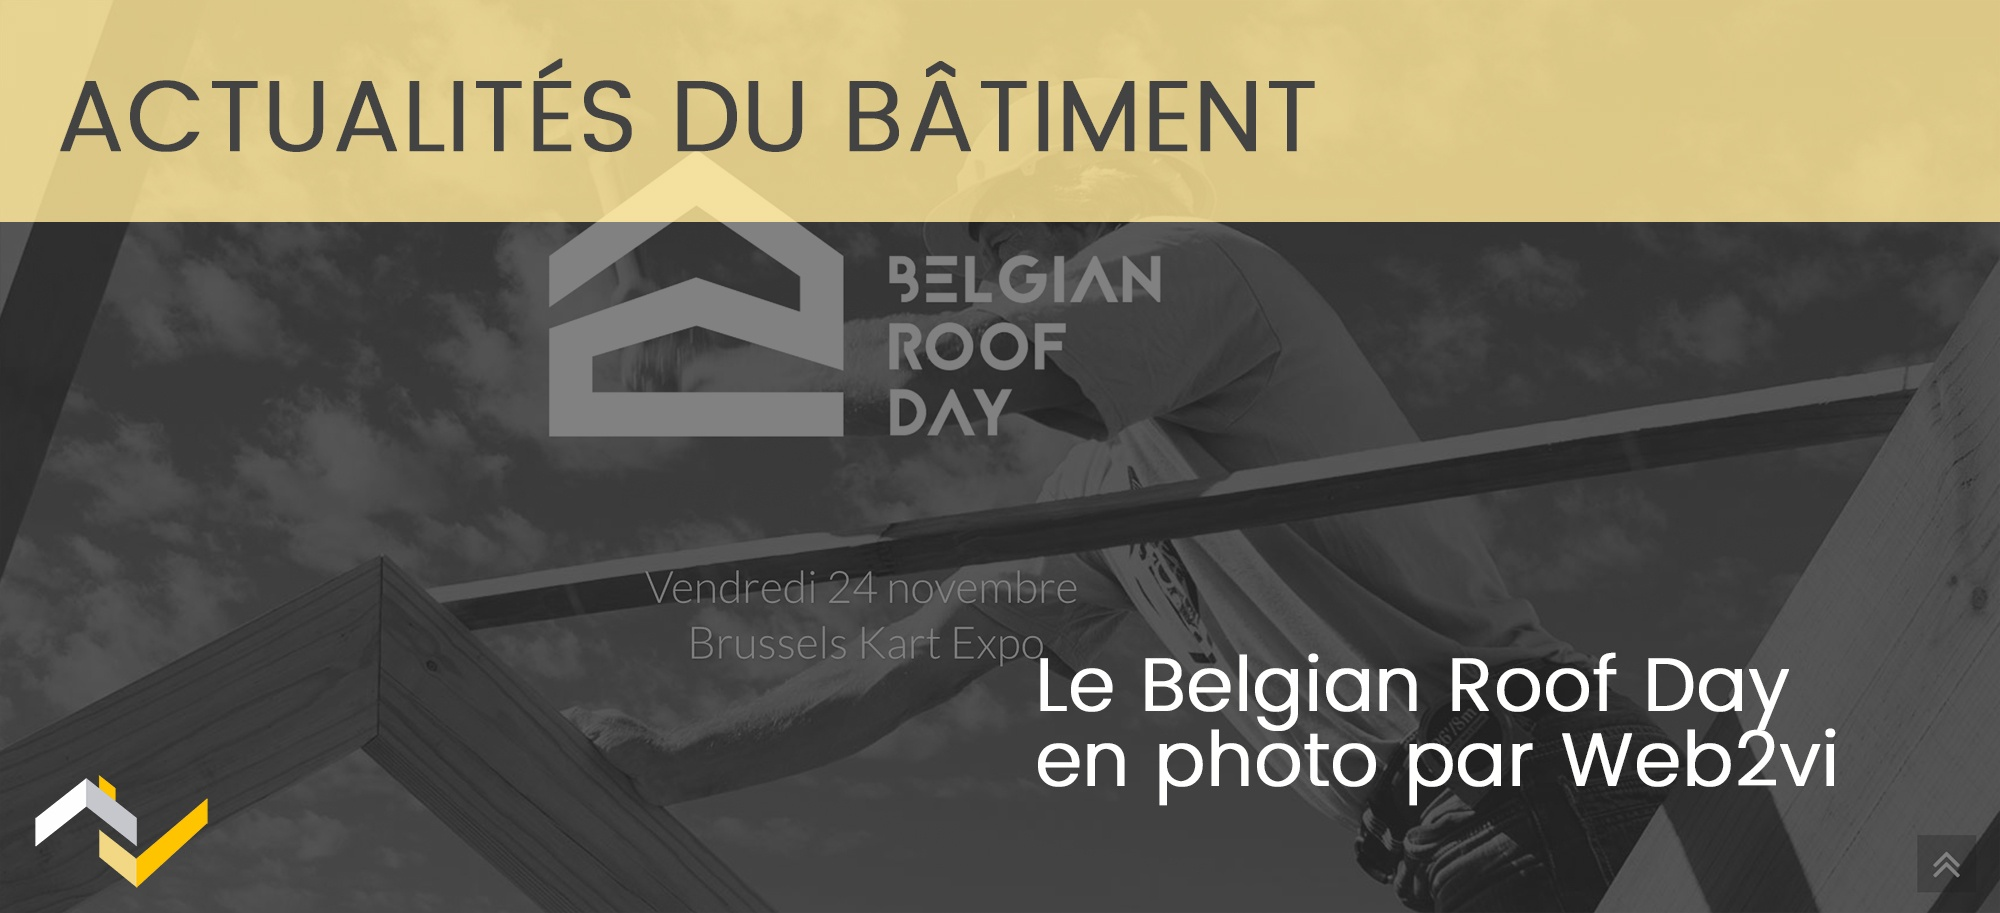 Le Belgian Roof Day en photo par Web2vi